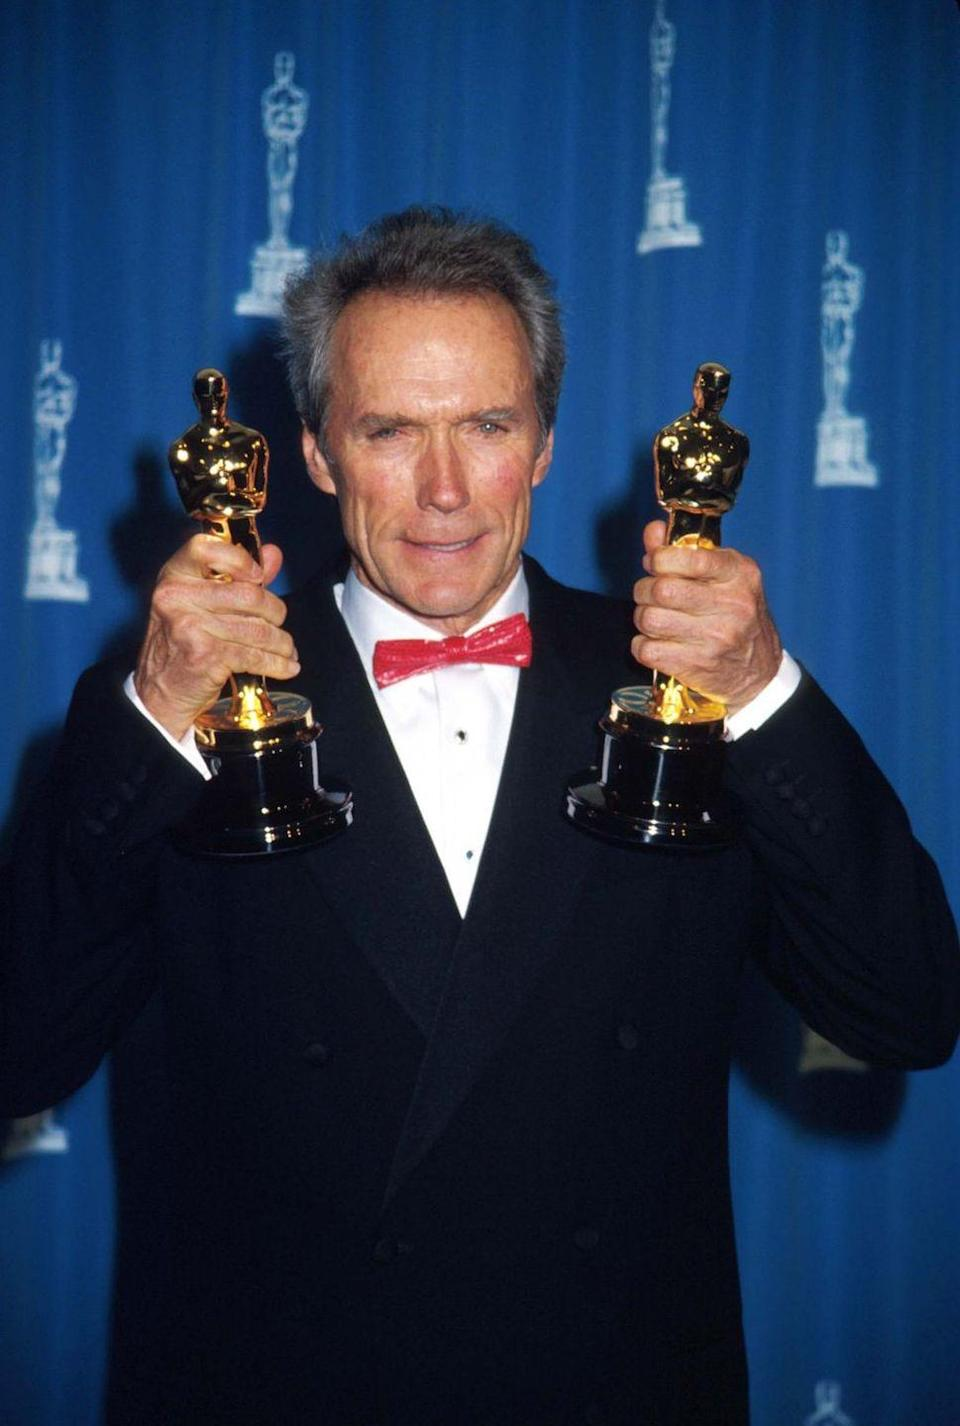 "<p>Once again, Eastwood broke outside of his blockbuster hits to direct and star in <em>Unforgiven</em>. His dramatic performance won the film Best Picture and the actor Best Director at the <a href=""https://www.britannica.com/biography/Clint-Eastwood/Films-of-the-1990s"" rel=""nofollow noopener"" target=""_blank"" data-ylk=""slk:Academy Awards"" class=""link rapid-noclick-resp"">Academy Awards</a>. </p>"